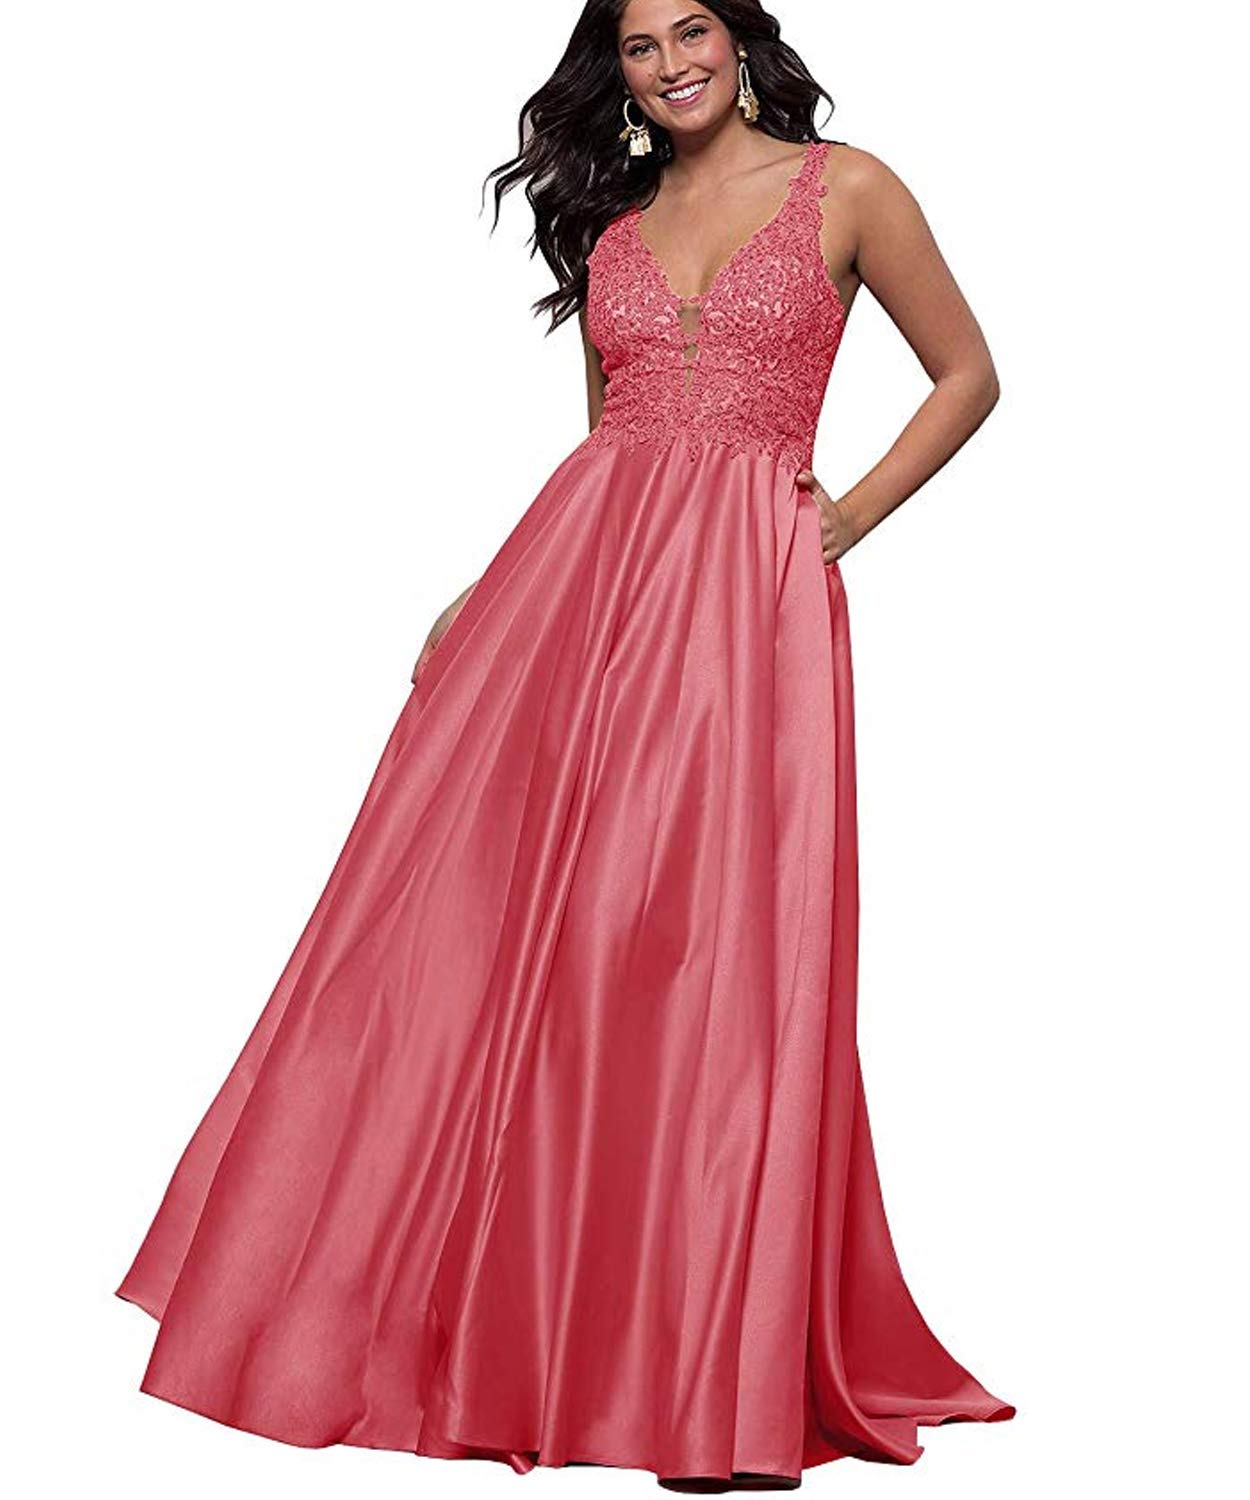 Lace Long Formal Evening Gown Applique V Neck Prom Dresses with Pockets for Women HD29